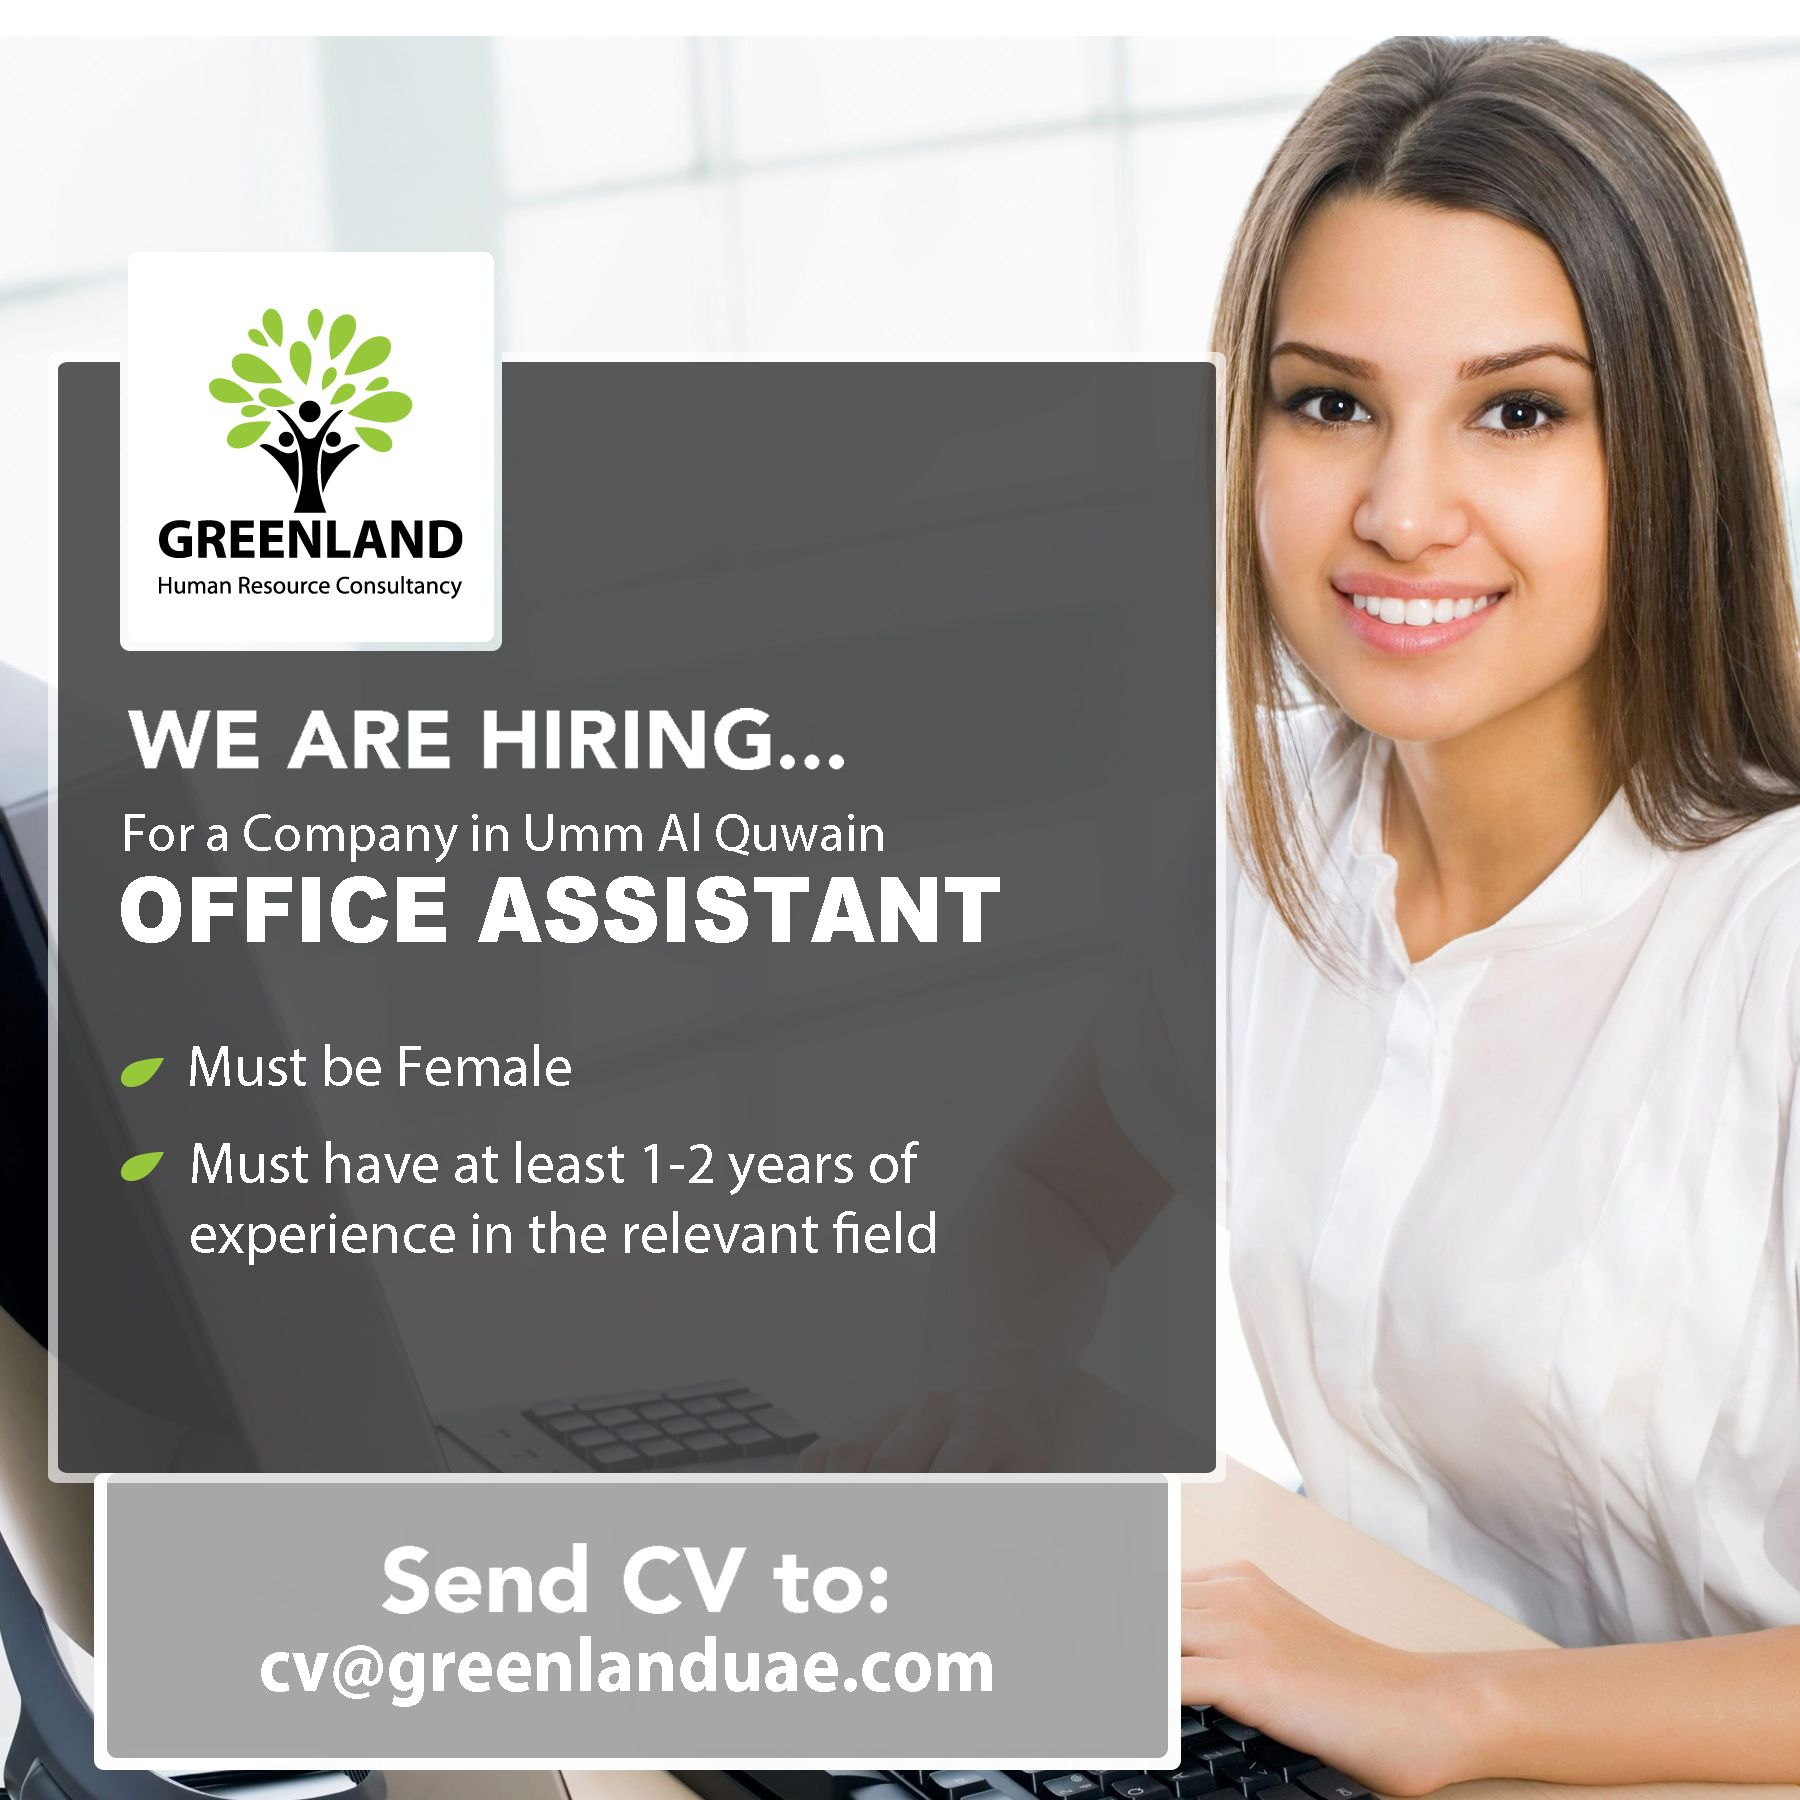 We are currently looking for an OFFICE ASSISTANT for a